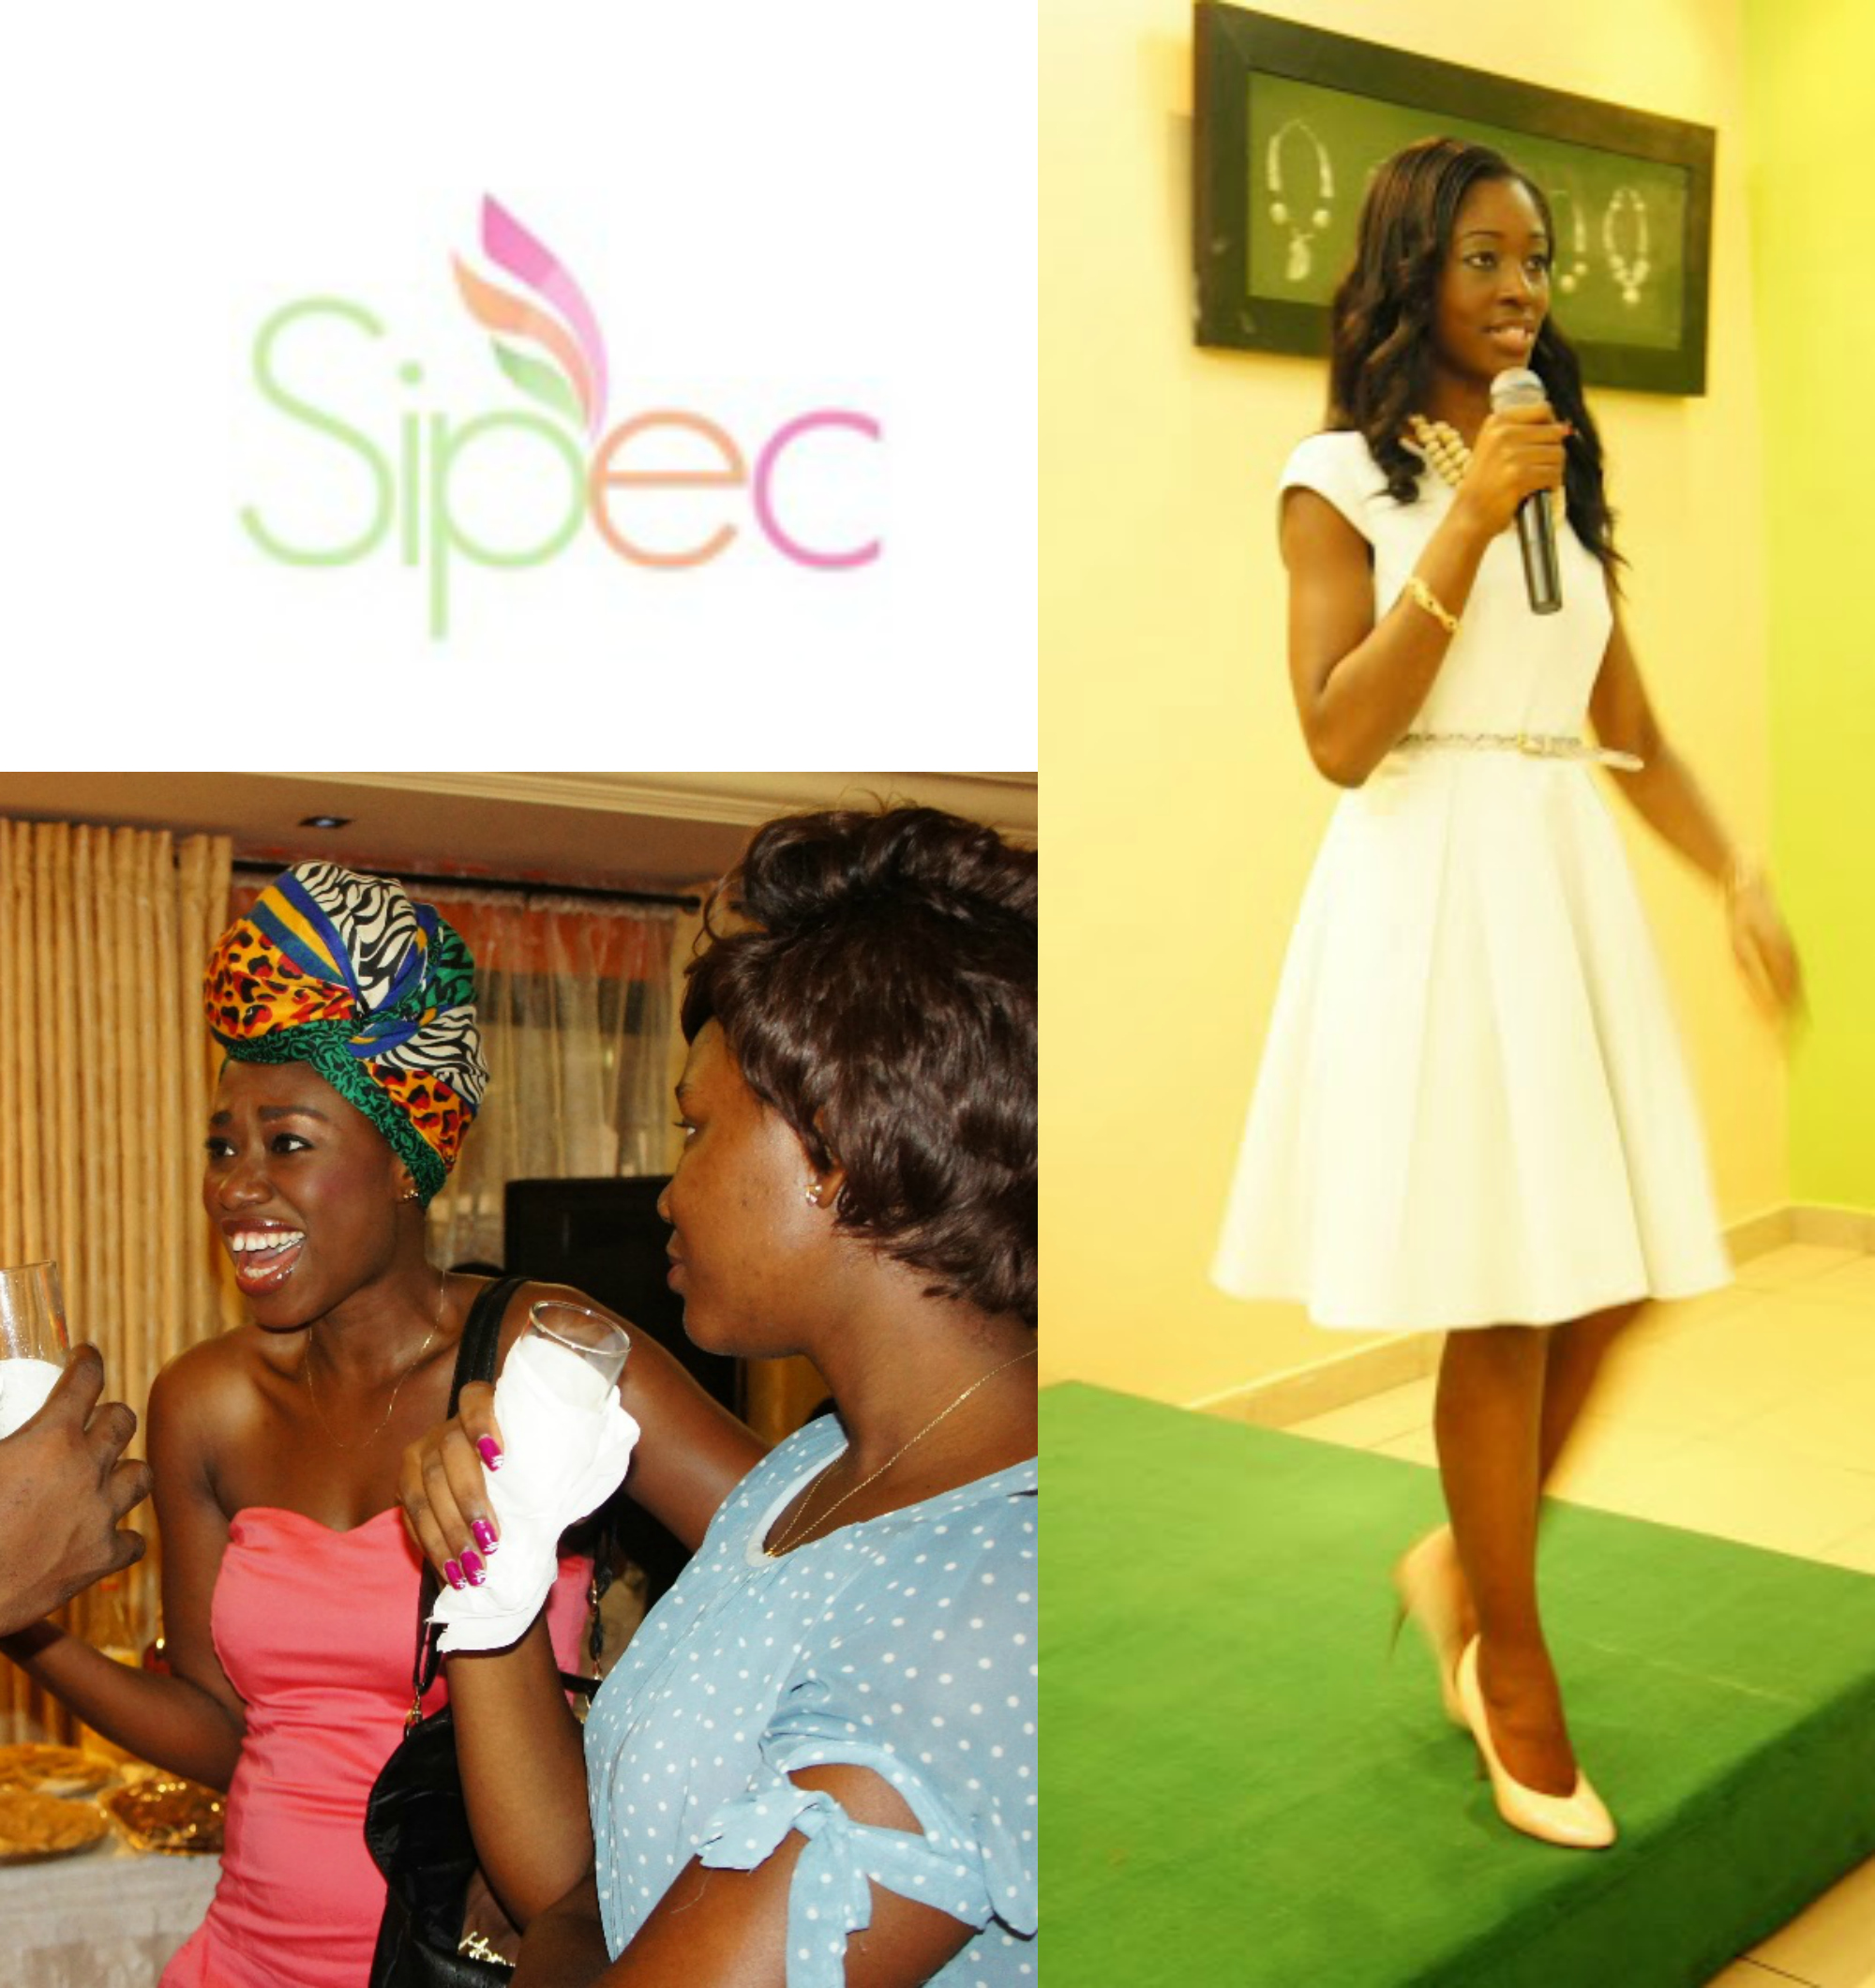 sipec events cameroon